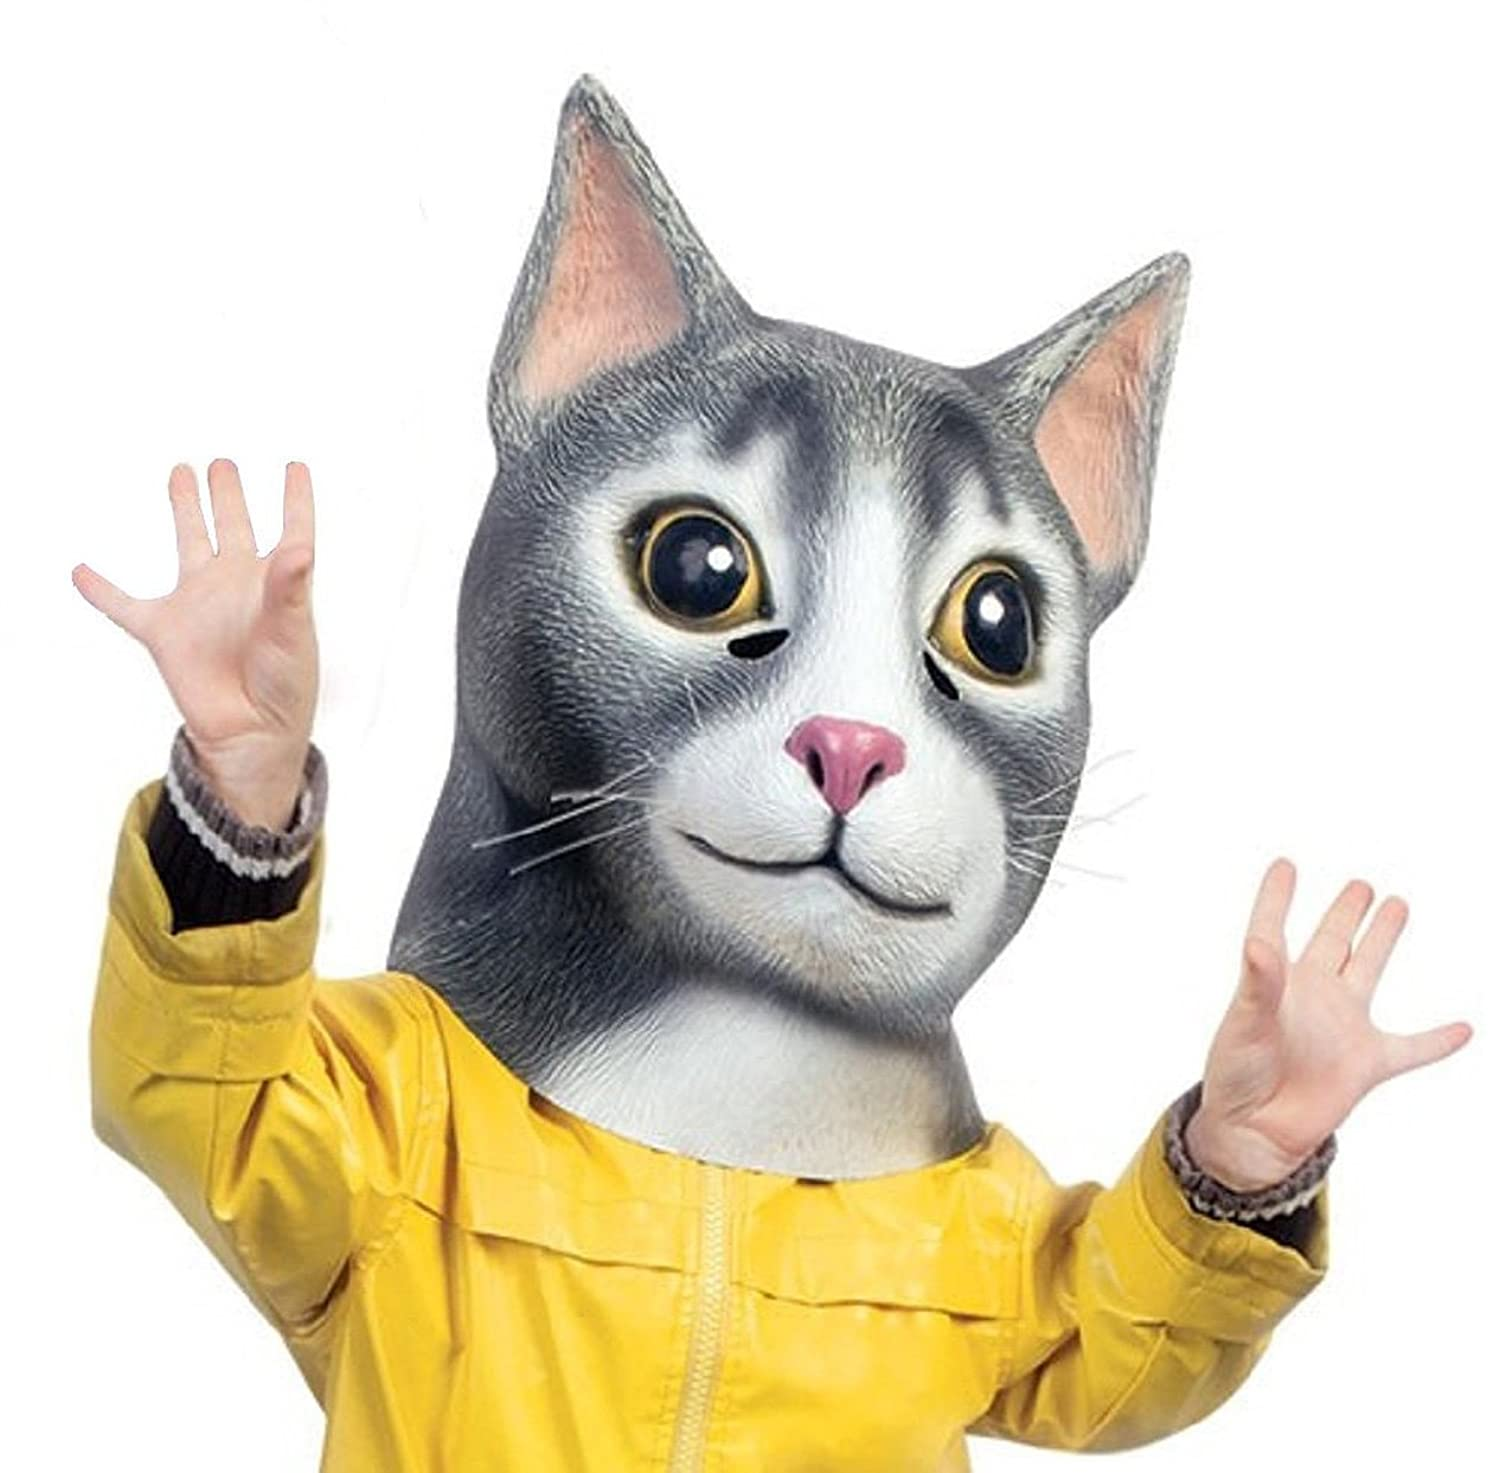 Amazon.com: Cat Latex Mask by Accoutrements - Halloween Costume ...